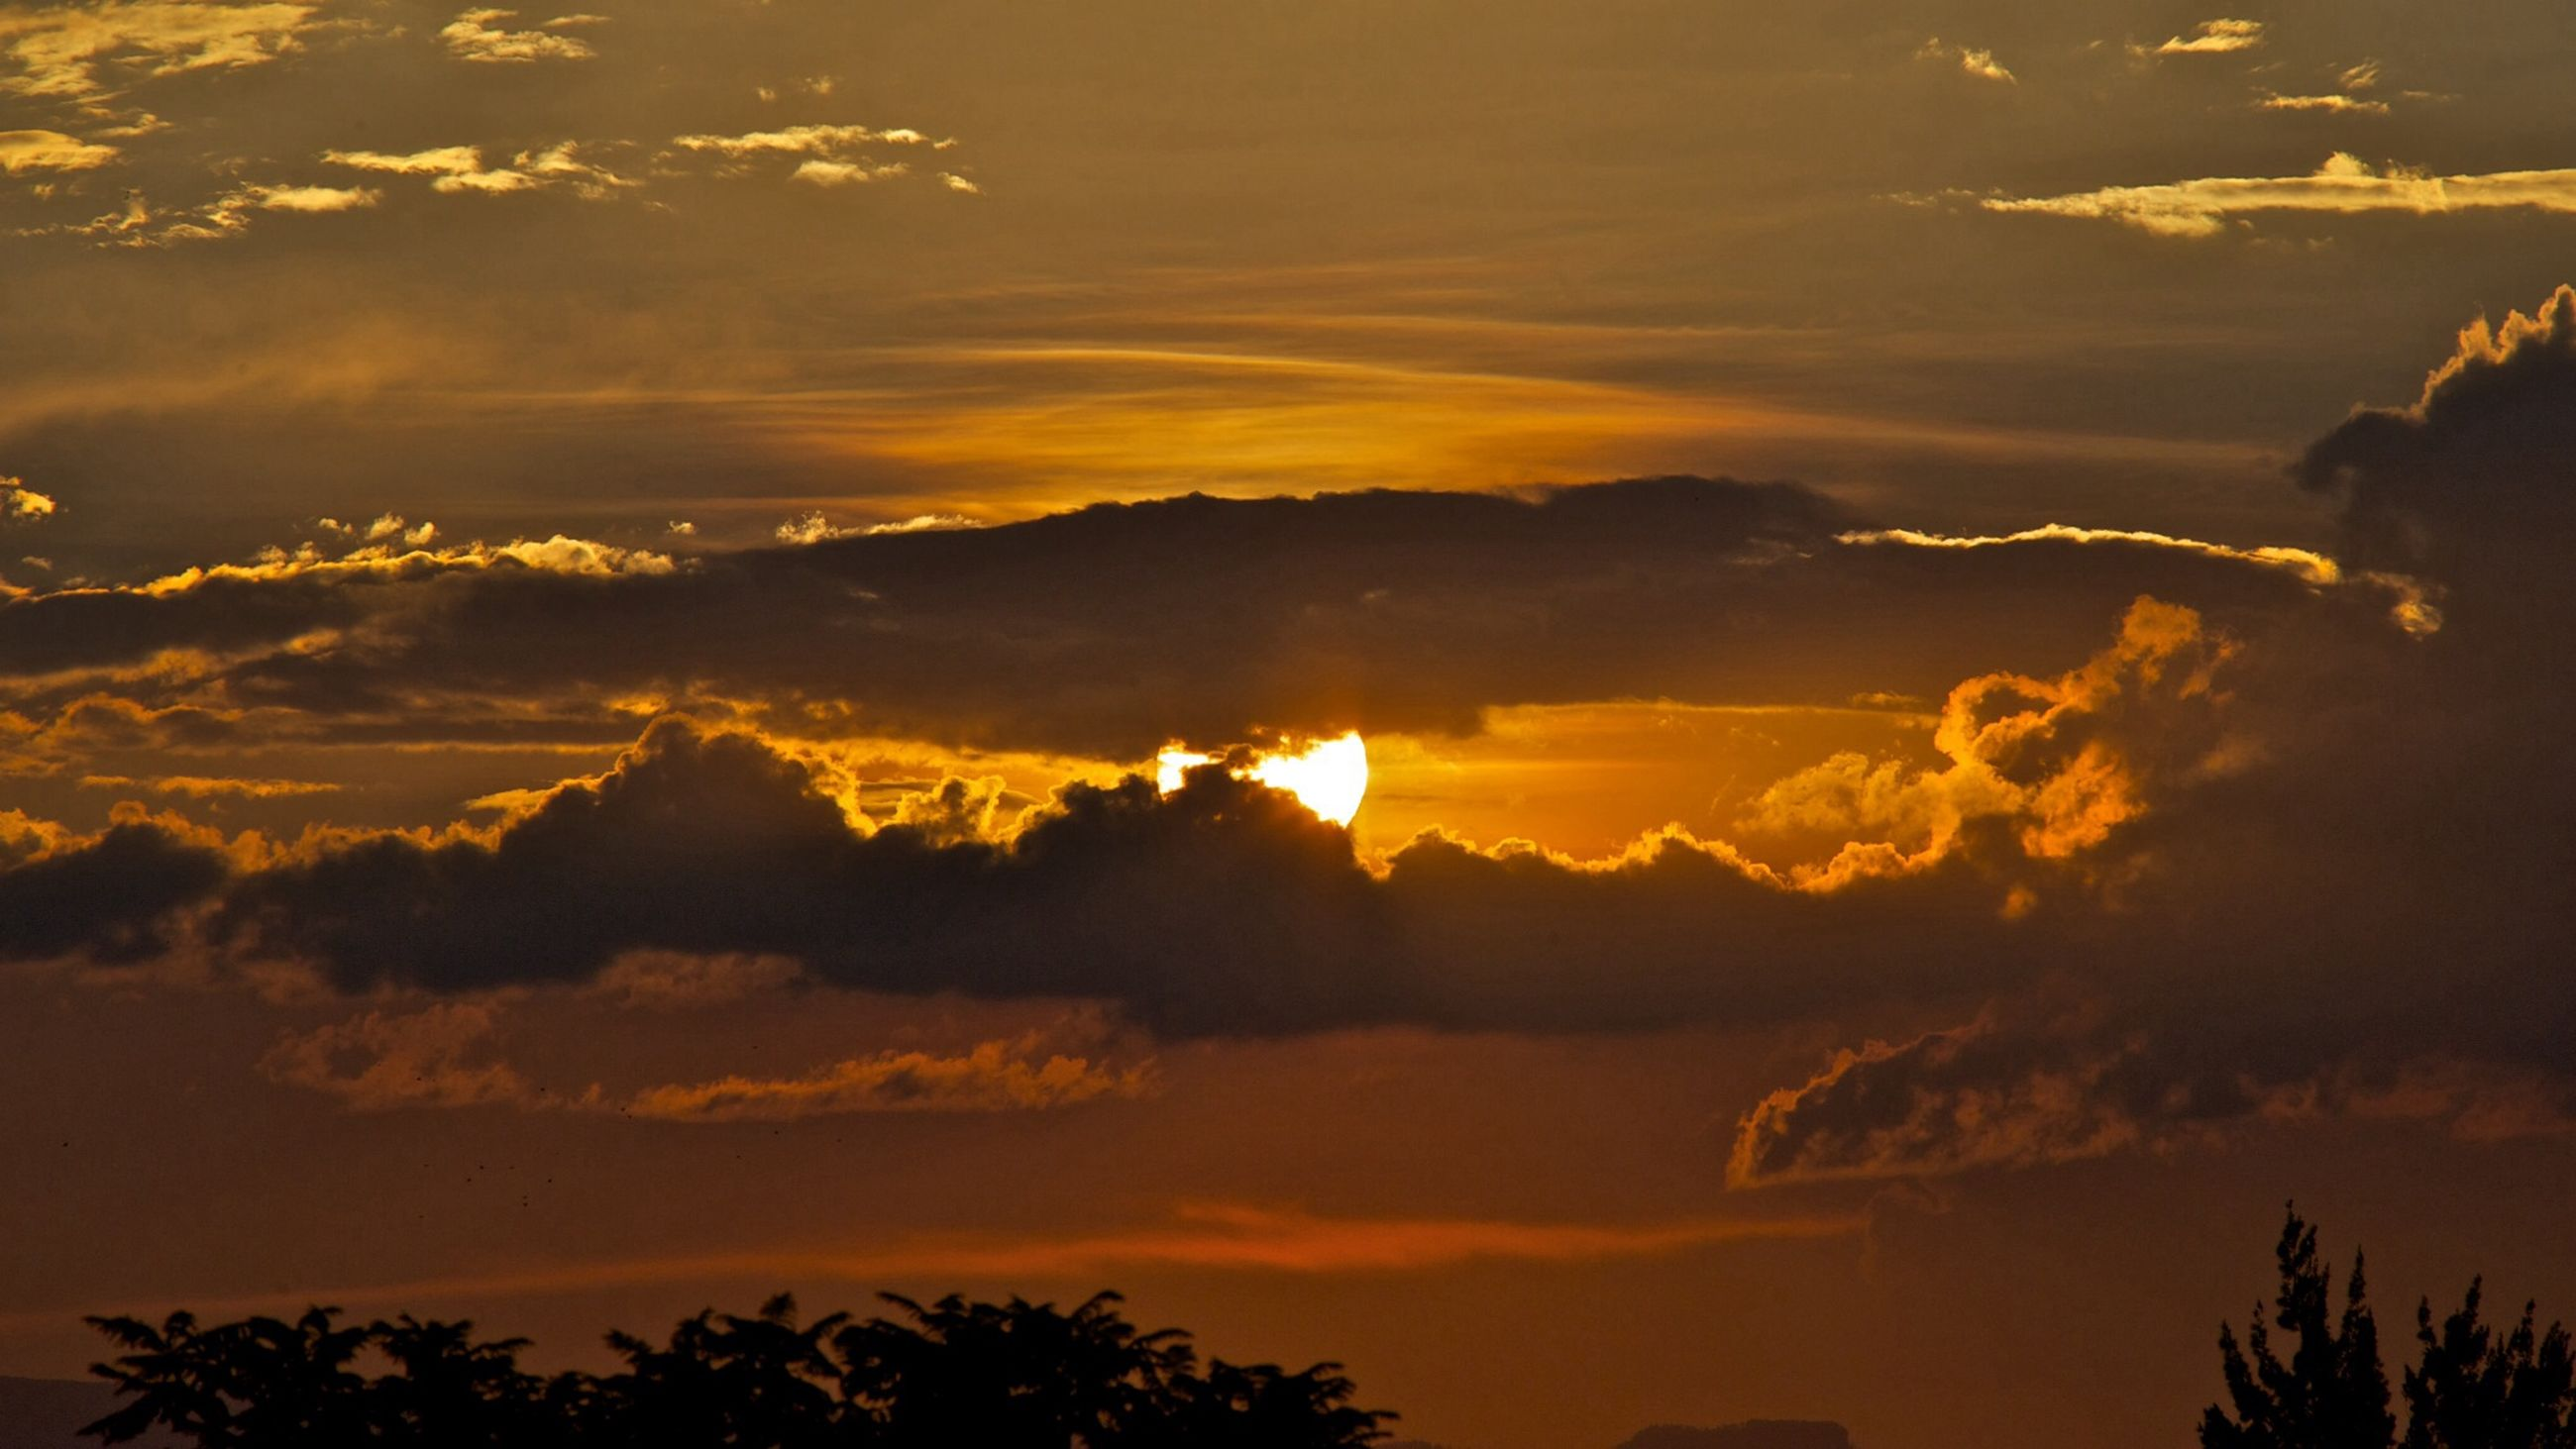 sunset, scenics, beauty in nature, sky, tranquil scene, orange color, tranquility, silhouette, cloud - sky, idyllic, nature, dramatic sky, sun, majestic, cloud, atmospheric mood, tree, awe, atmosphere, outdoors